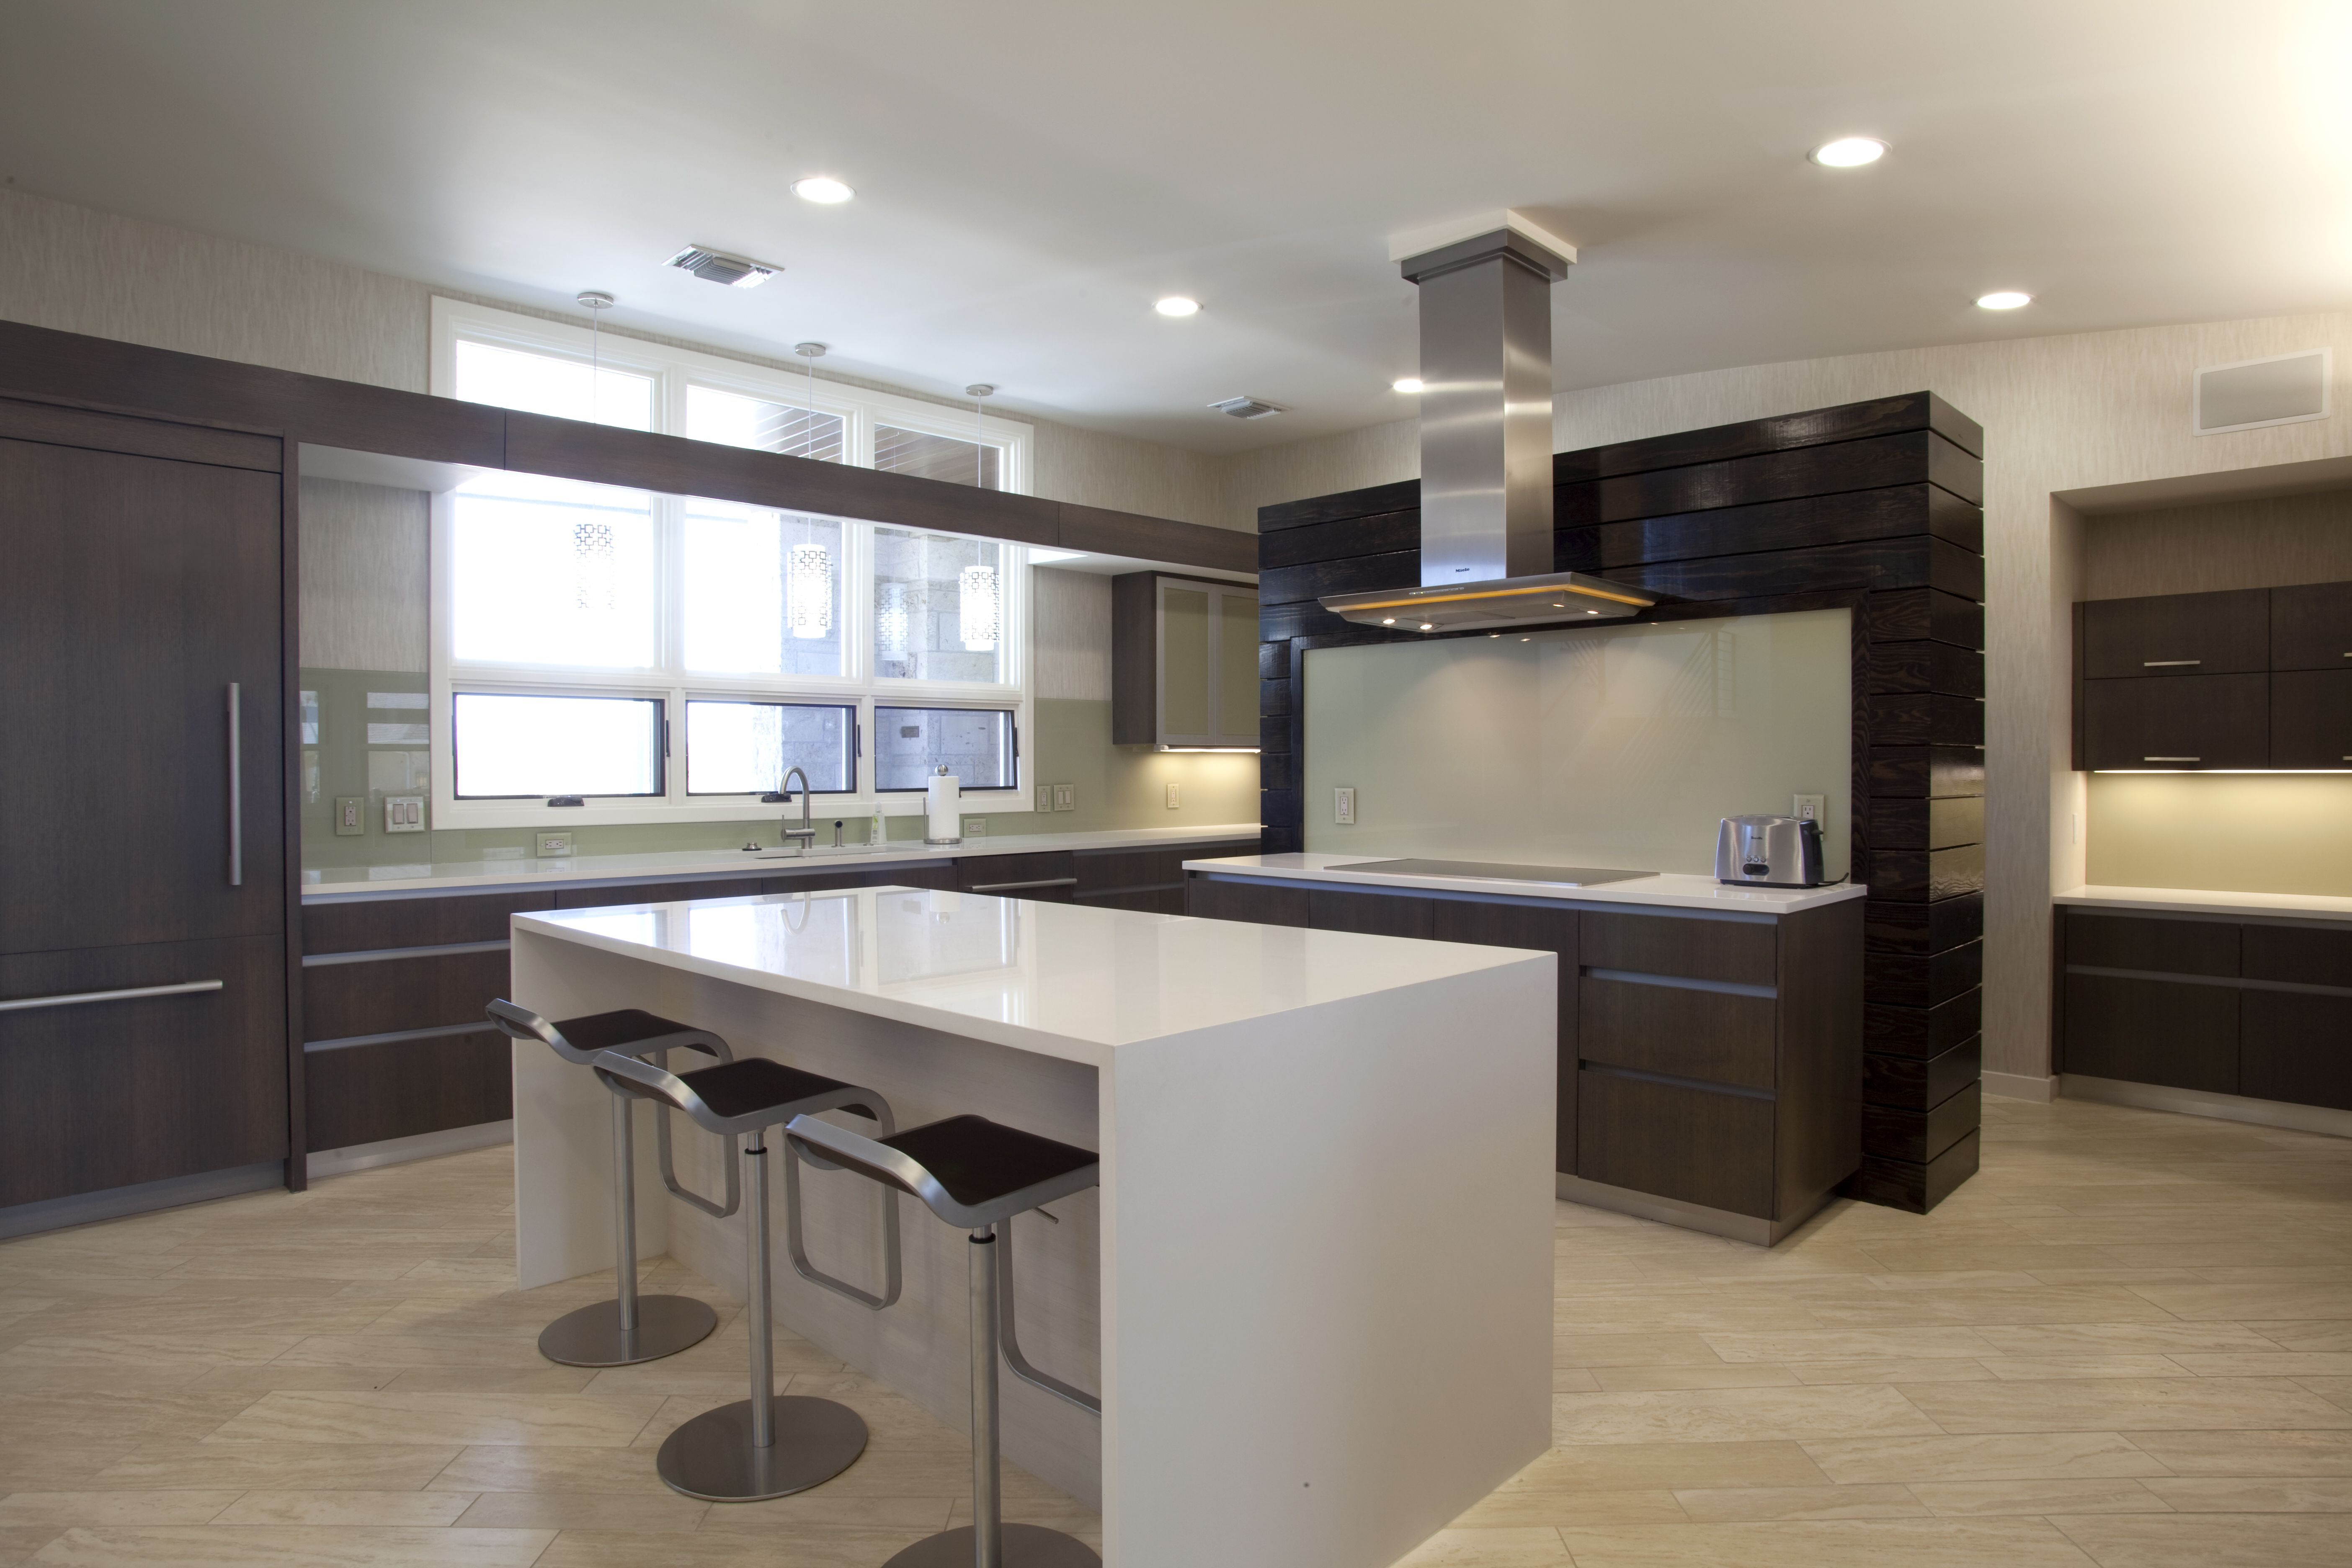 widescreen cool kitchen island luxury contemporary of lighting androids hd white quartz countertop in showing the luxurious